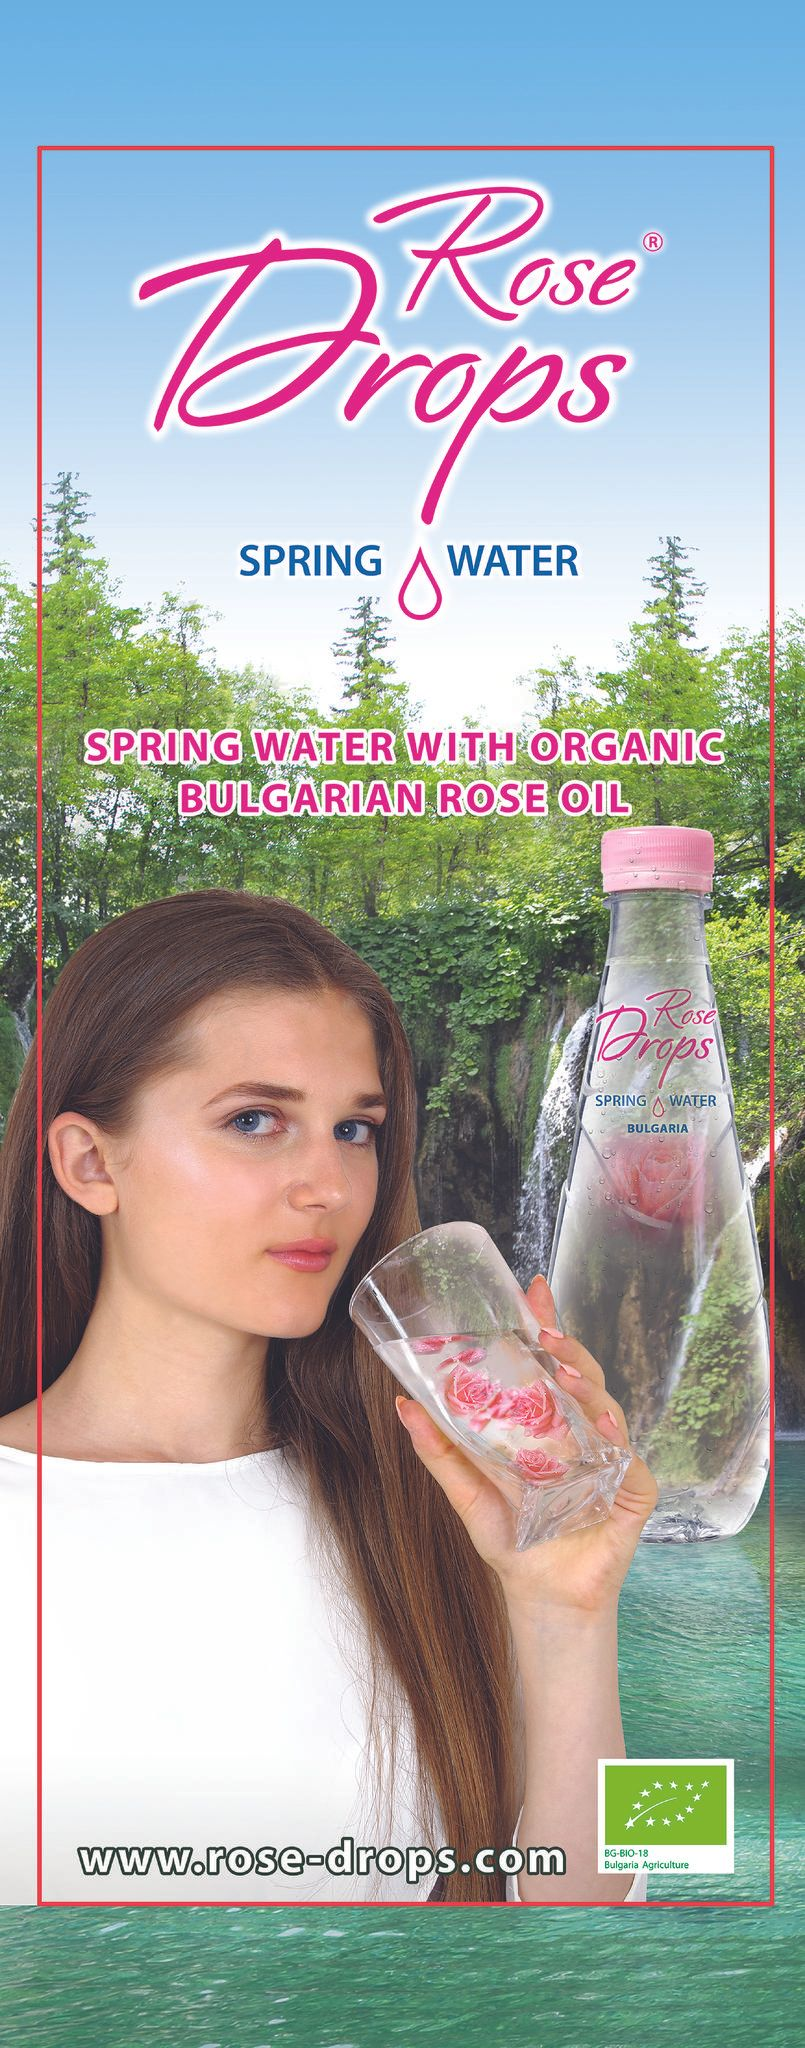 ROSE DROPS  drinking water with organic rose extract